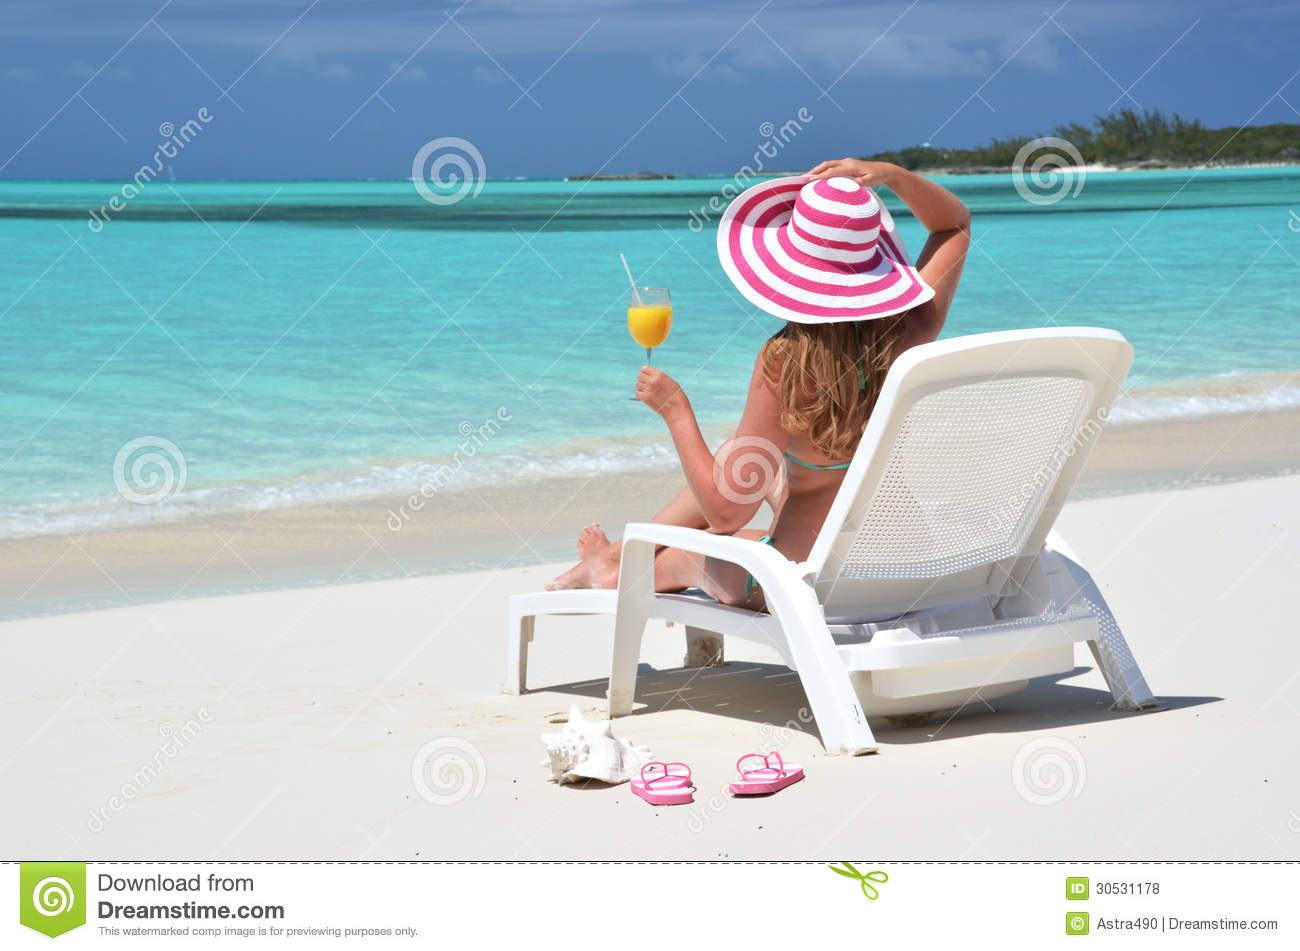 Girl with a glass of orange juice on the beach